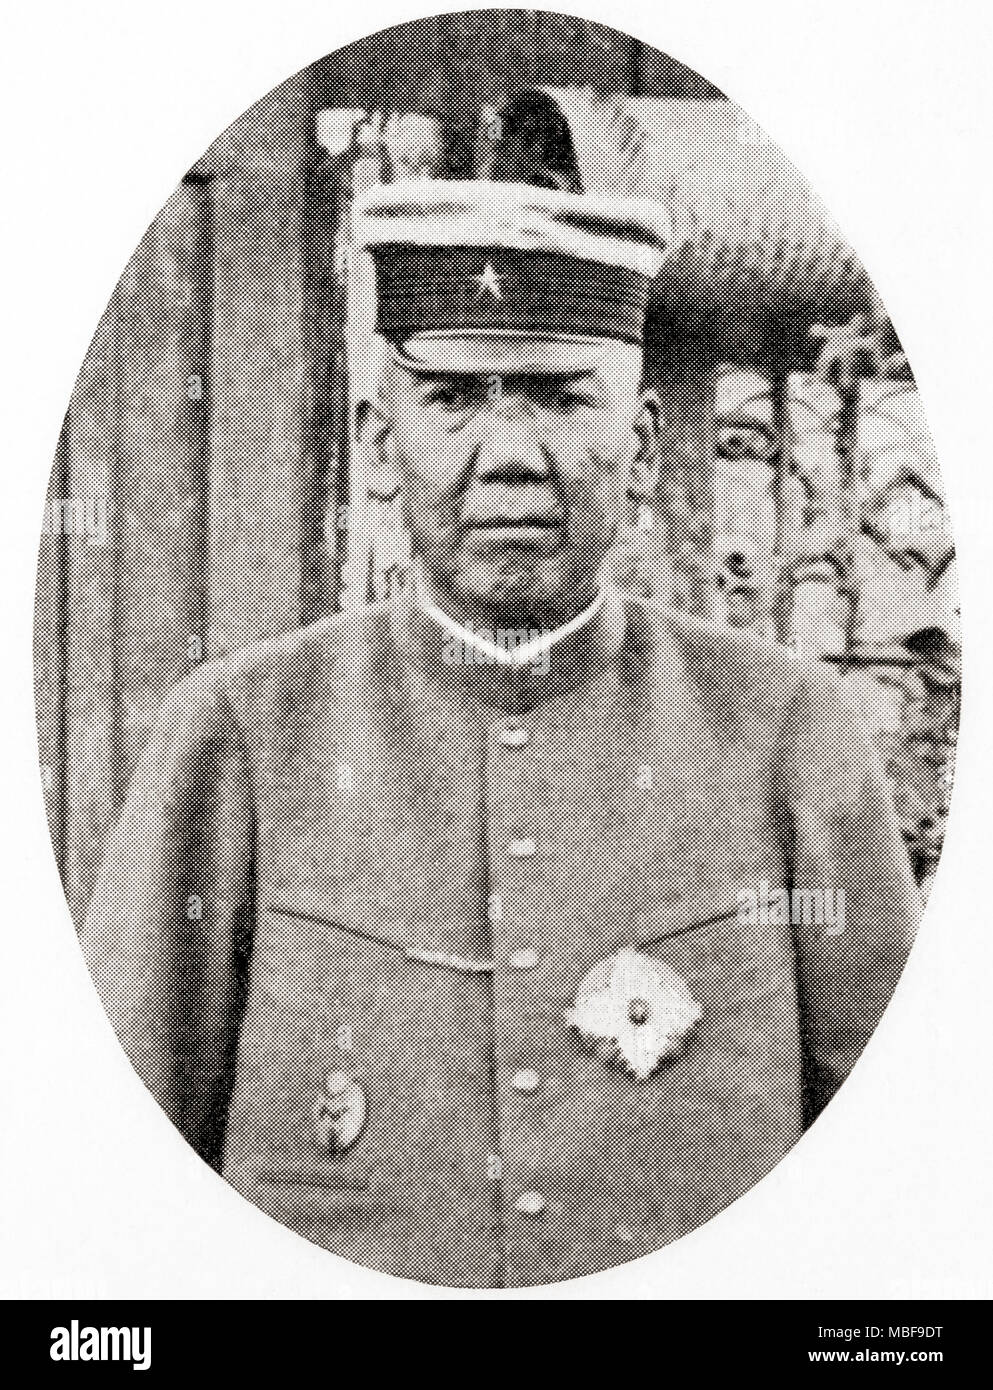 Prince Ōyama Iwao, 1842 – 1916.  Japanese field marshal, and a founder of the Imperial Japanese Army.  From Hutchinson's History of the Nations, published 1915 - Stock Image